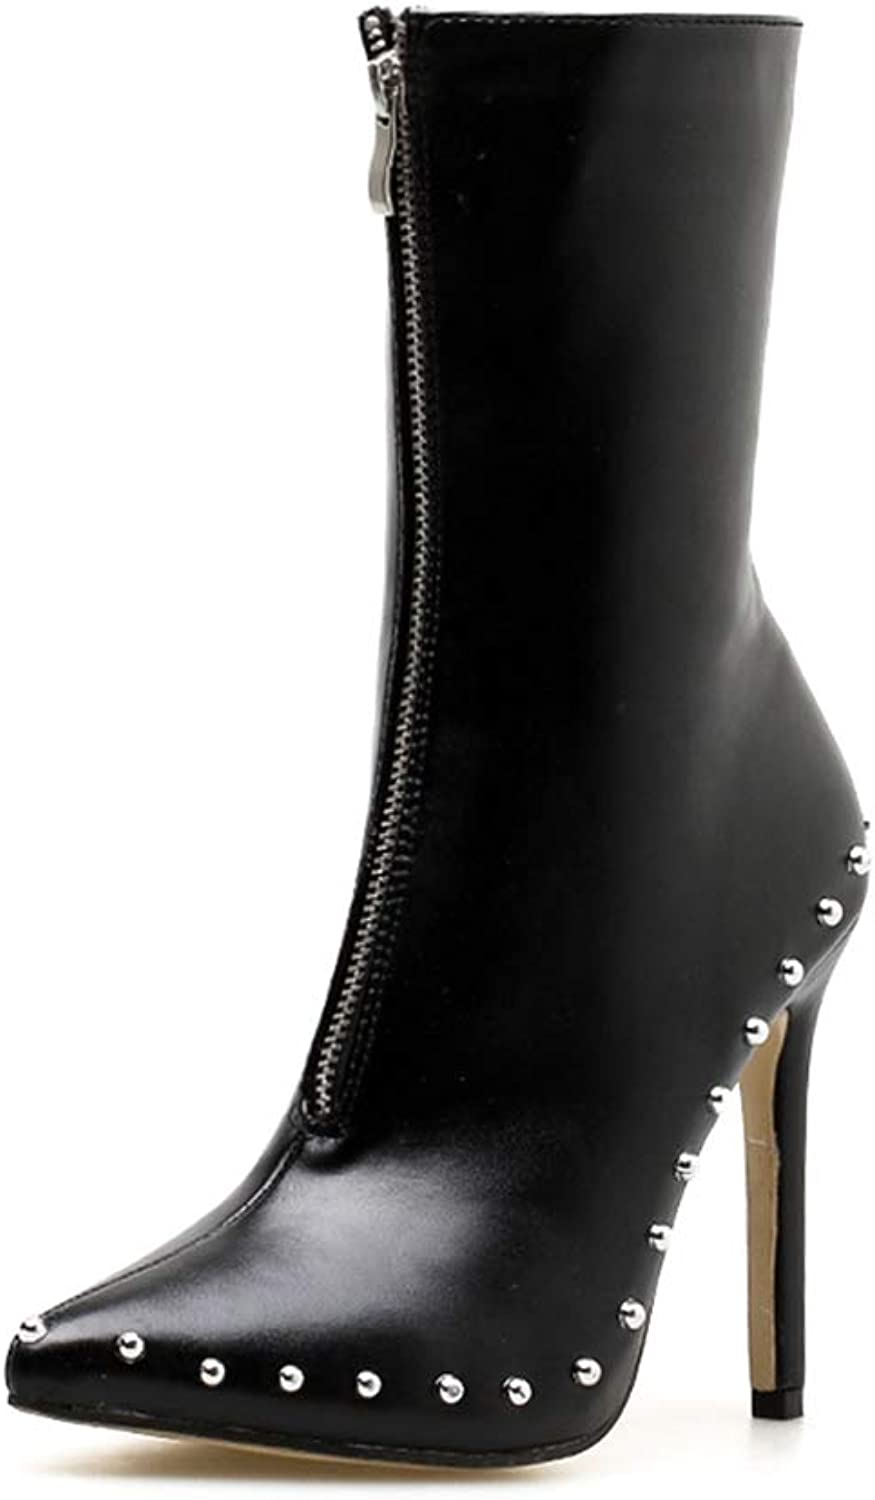 York Zhu Women's Fashion Boot,Rivet Pointed Toe High Thick Heel Riding Boots Ankle High